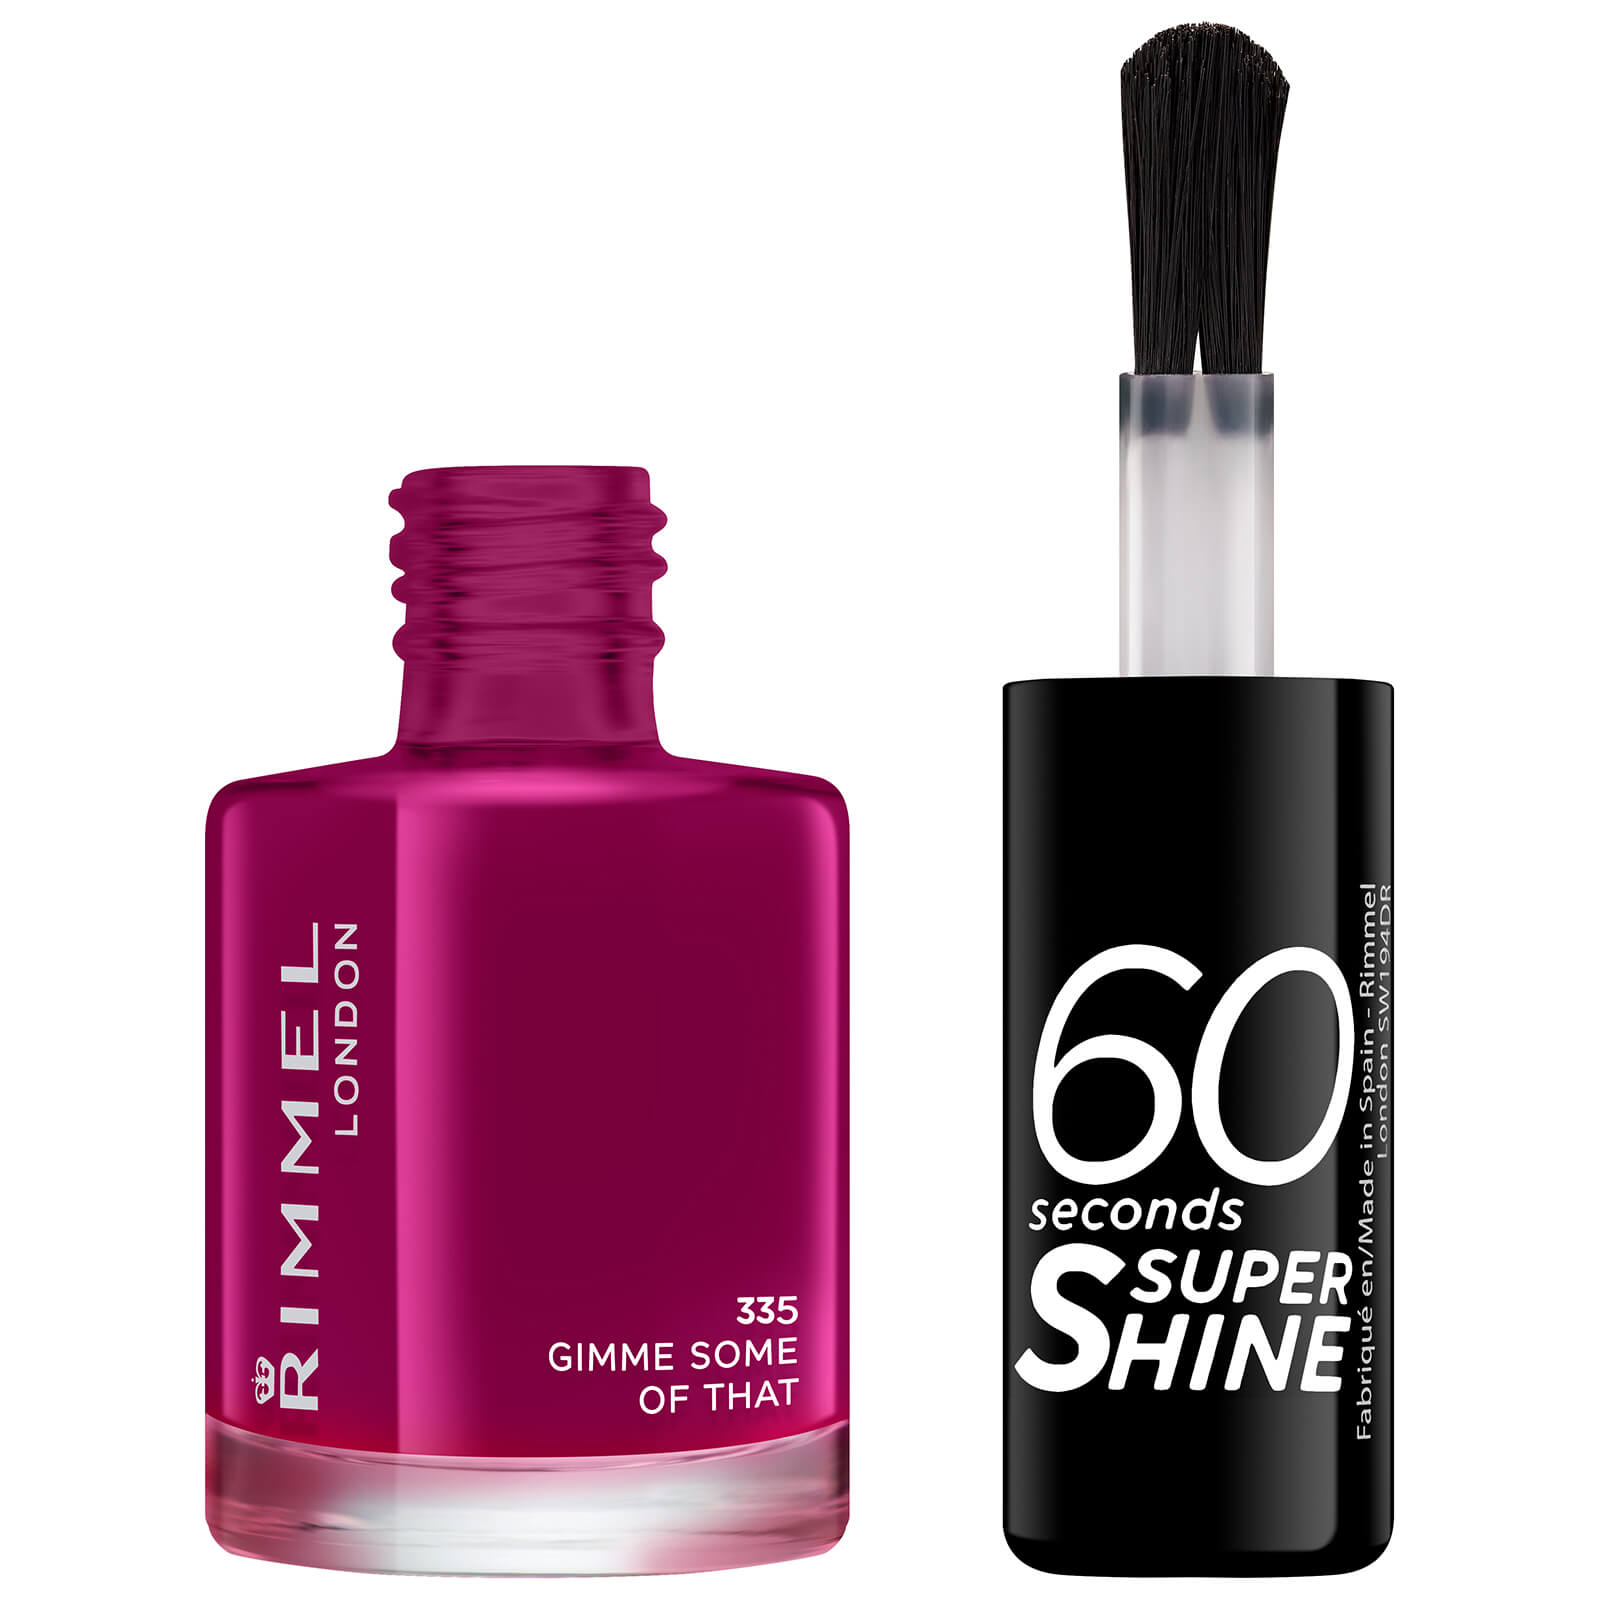 Rimmel 60 Seconds Super Shine Nail Polish 8ml (Various Shades) - Gimme Some of That